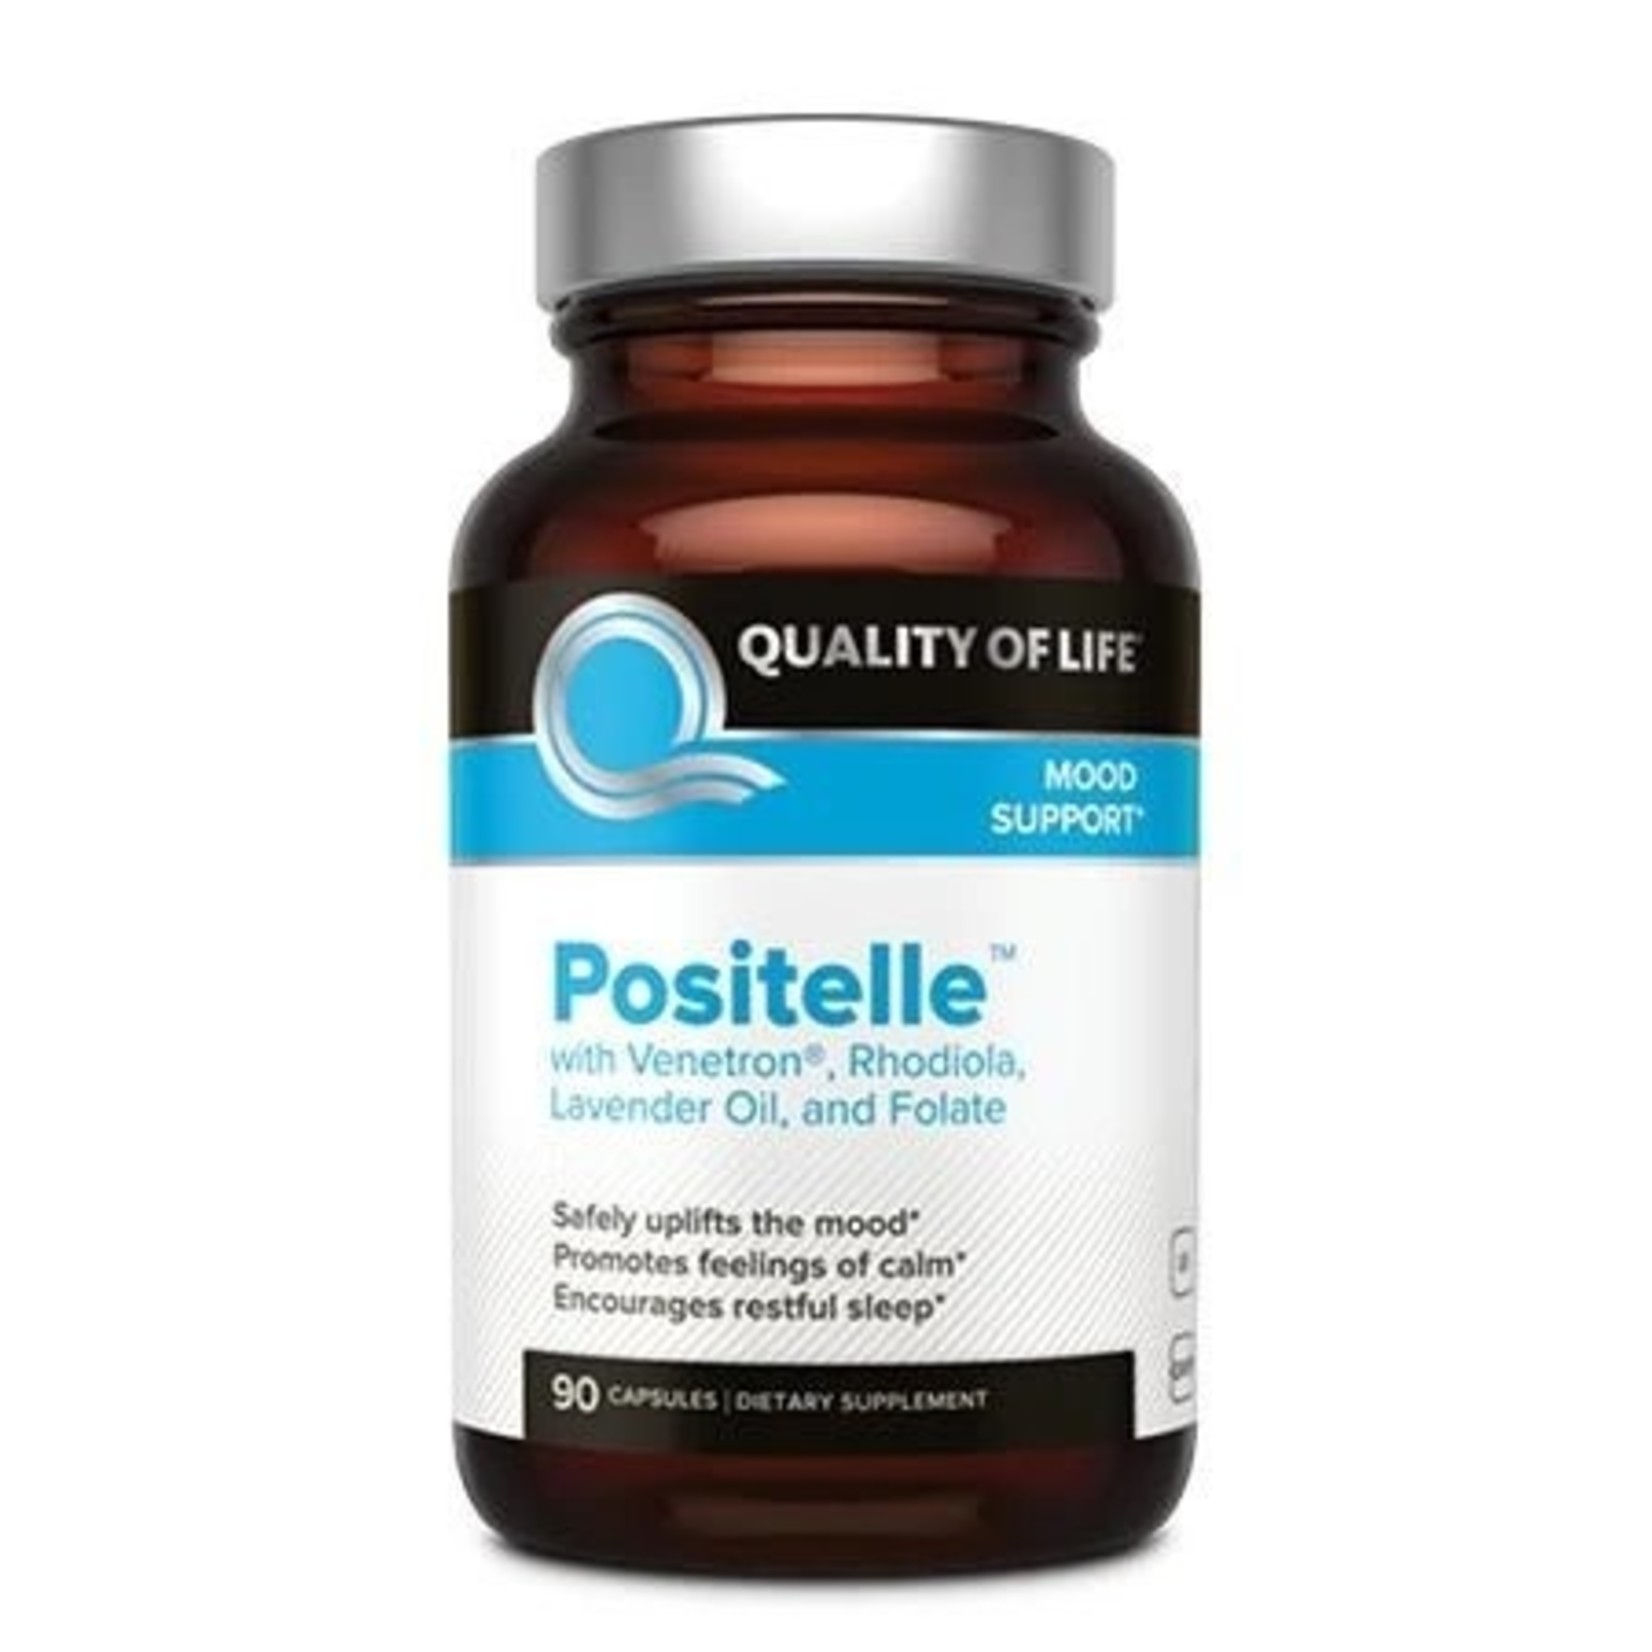 Quality of Life QOL Positelle with Venetron and Rhodiola 90ct